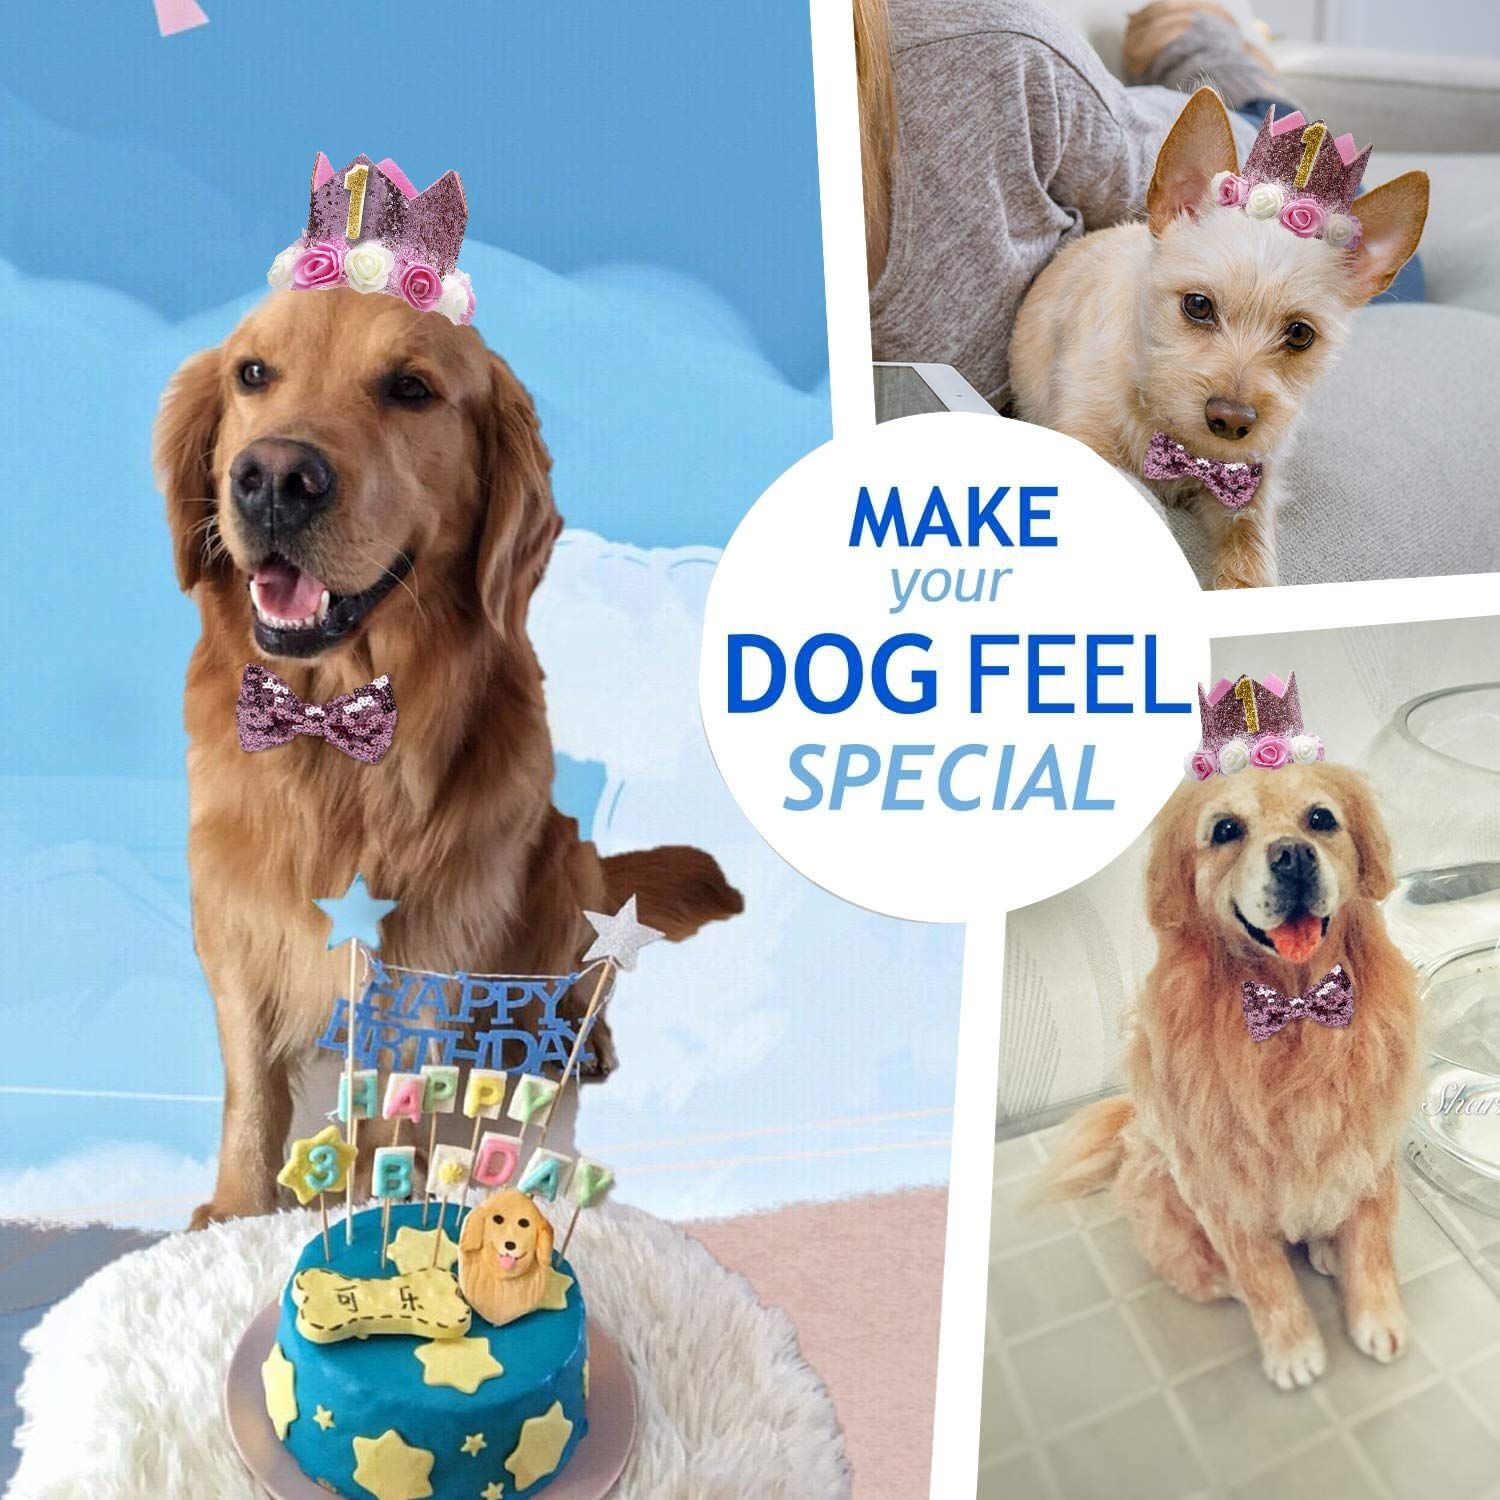 PET SHOW Crown Dog Birthday Hat for Girls Reusable Birthday Party Cat kitten Headband with 1-9 Figures Charms Grooming Accessories Pack of 1 Pink